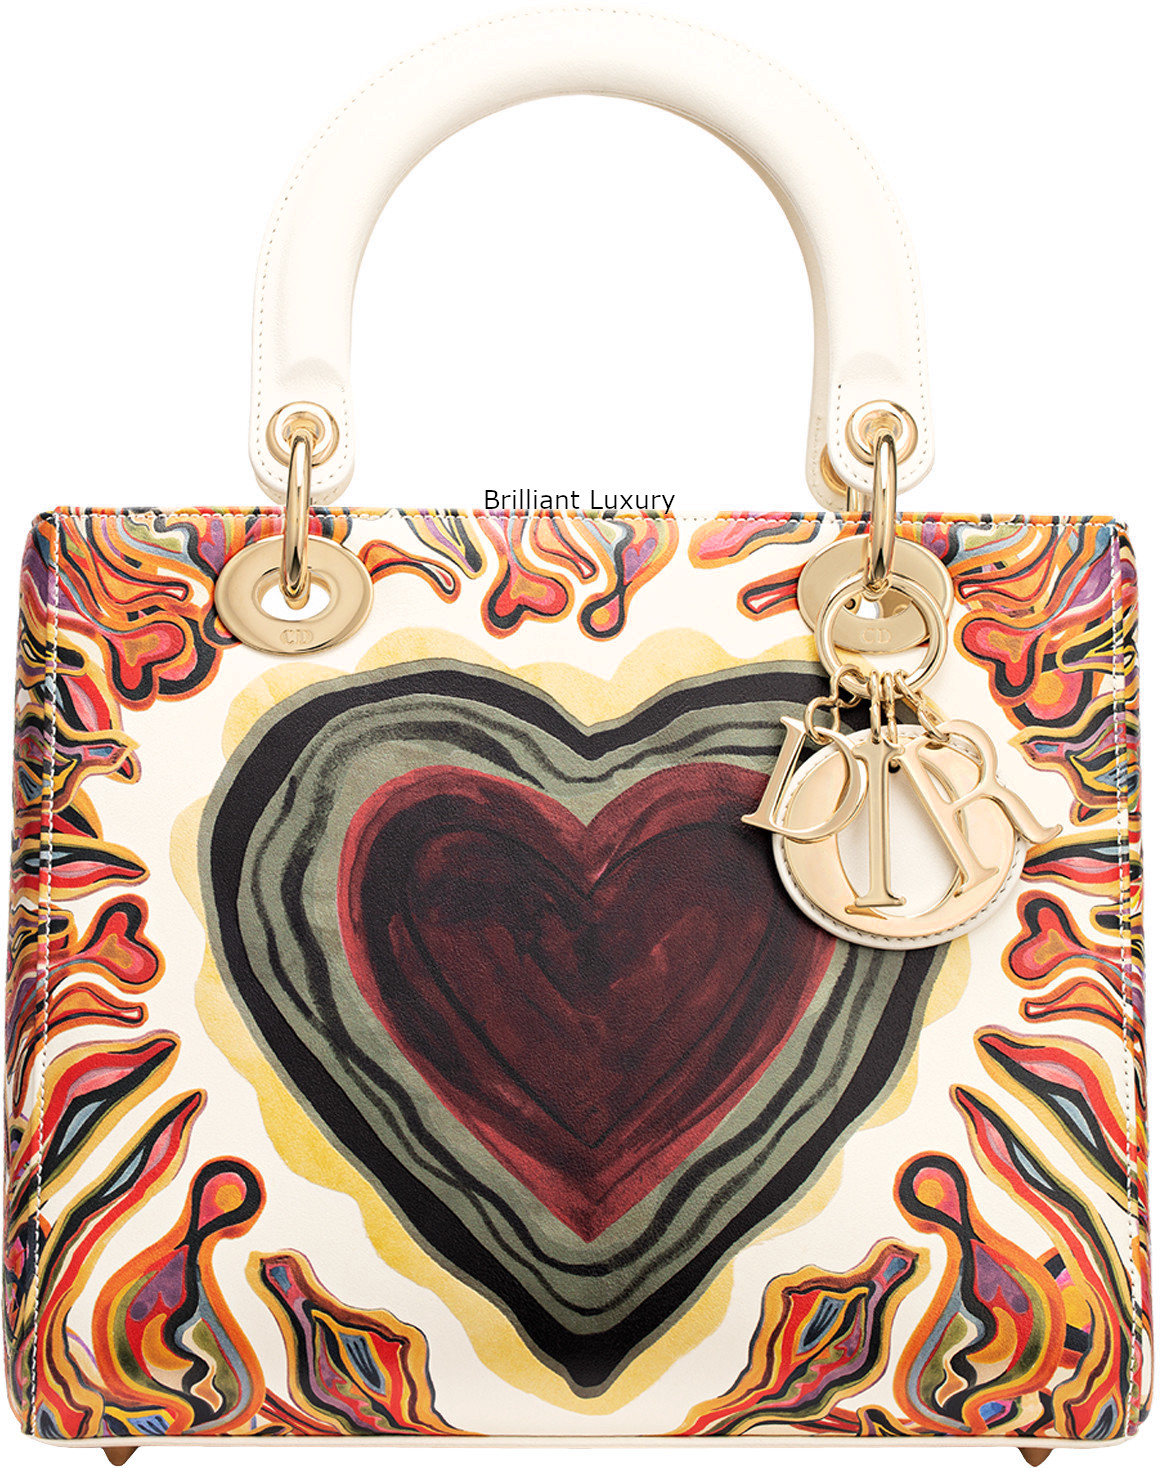 Brilliant Luxury│Lady Dior Art Bag in off-white calfskin, printed with a textured Dioramour heart and light gold-tone metal jewellery